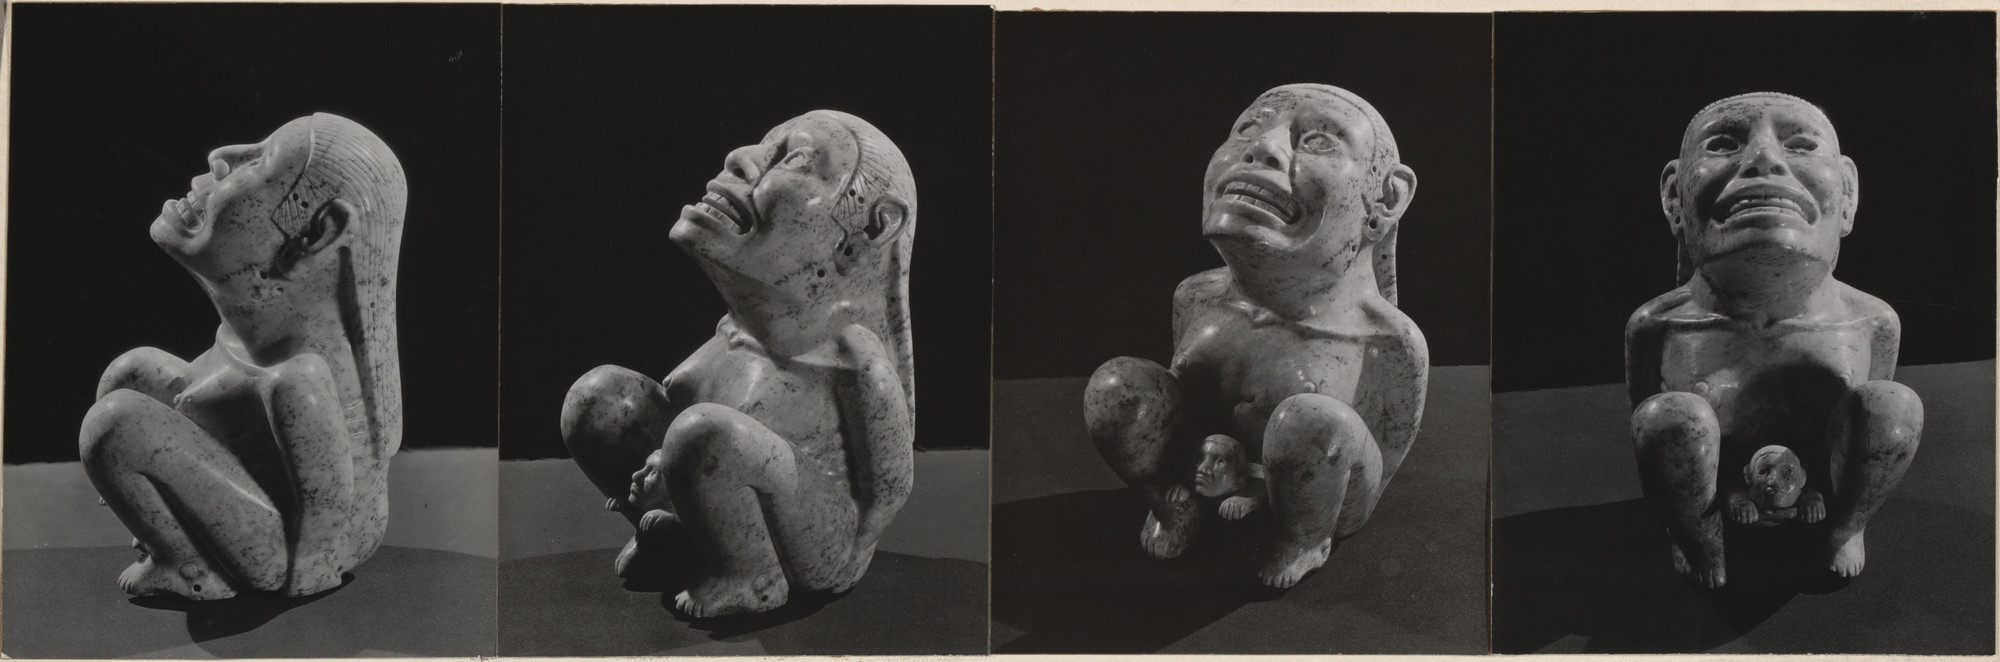 Man Ray (Emmanuel Radnitzky). Statuette of Ixcuina, Mexican Goddess of Maternity. c. 1930